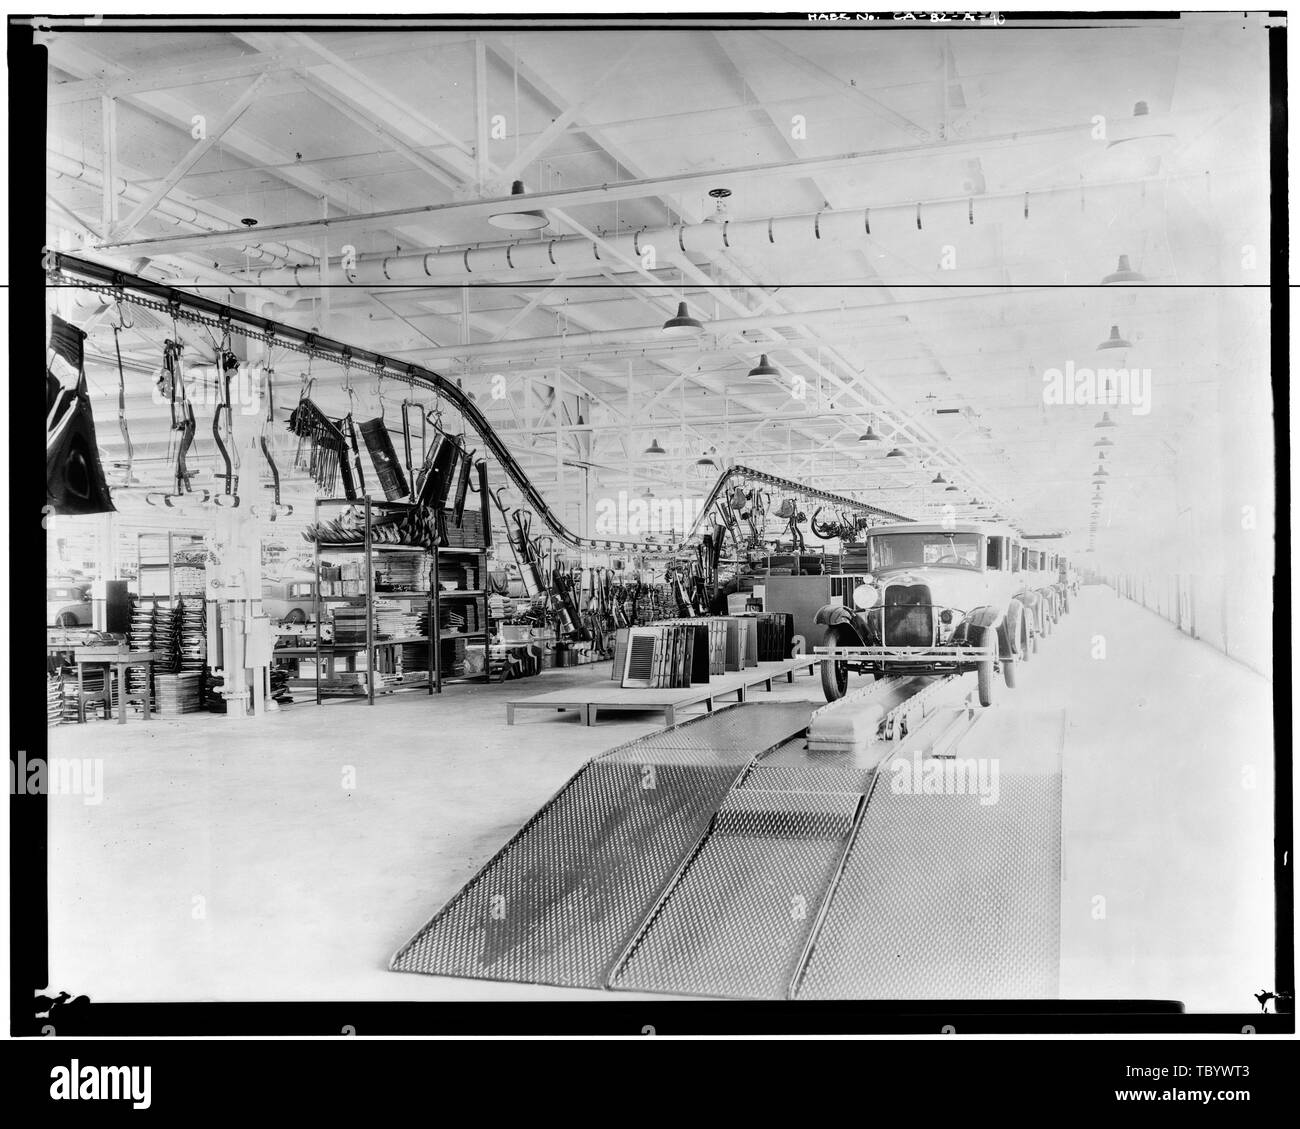 Neg. Nr. F59A, 13 Apr, 1930 INTERIORASSEMBLY GEBÄUDE, CHASSIS LINE, Blick nach Süden die Ford Motor Company Long Beach Montagewerk, Assembly Building, 700 Henry Ford Avenue, Long Beach, Los Angeles County, CA Stockbild